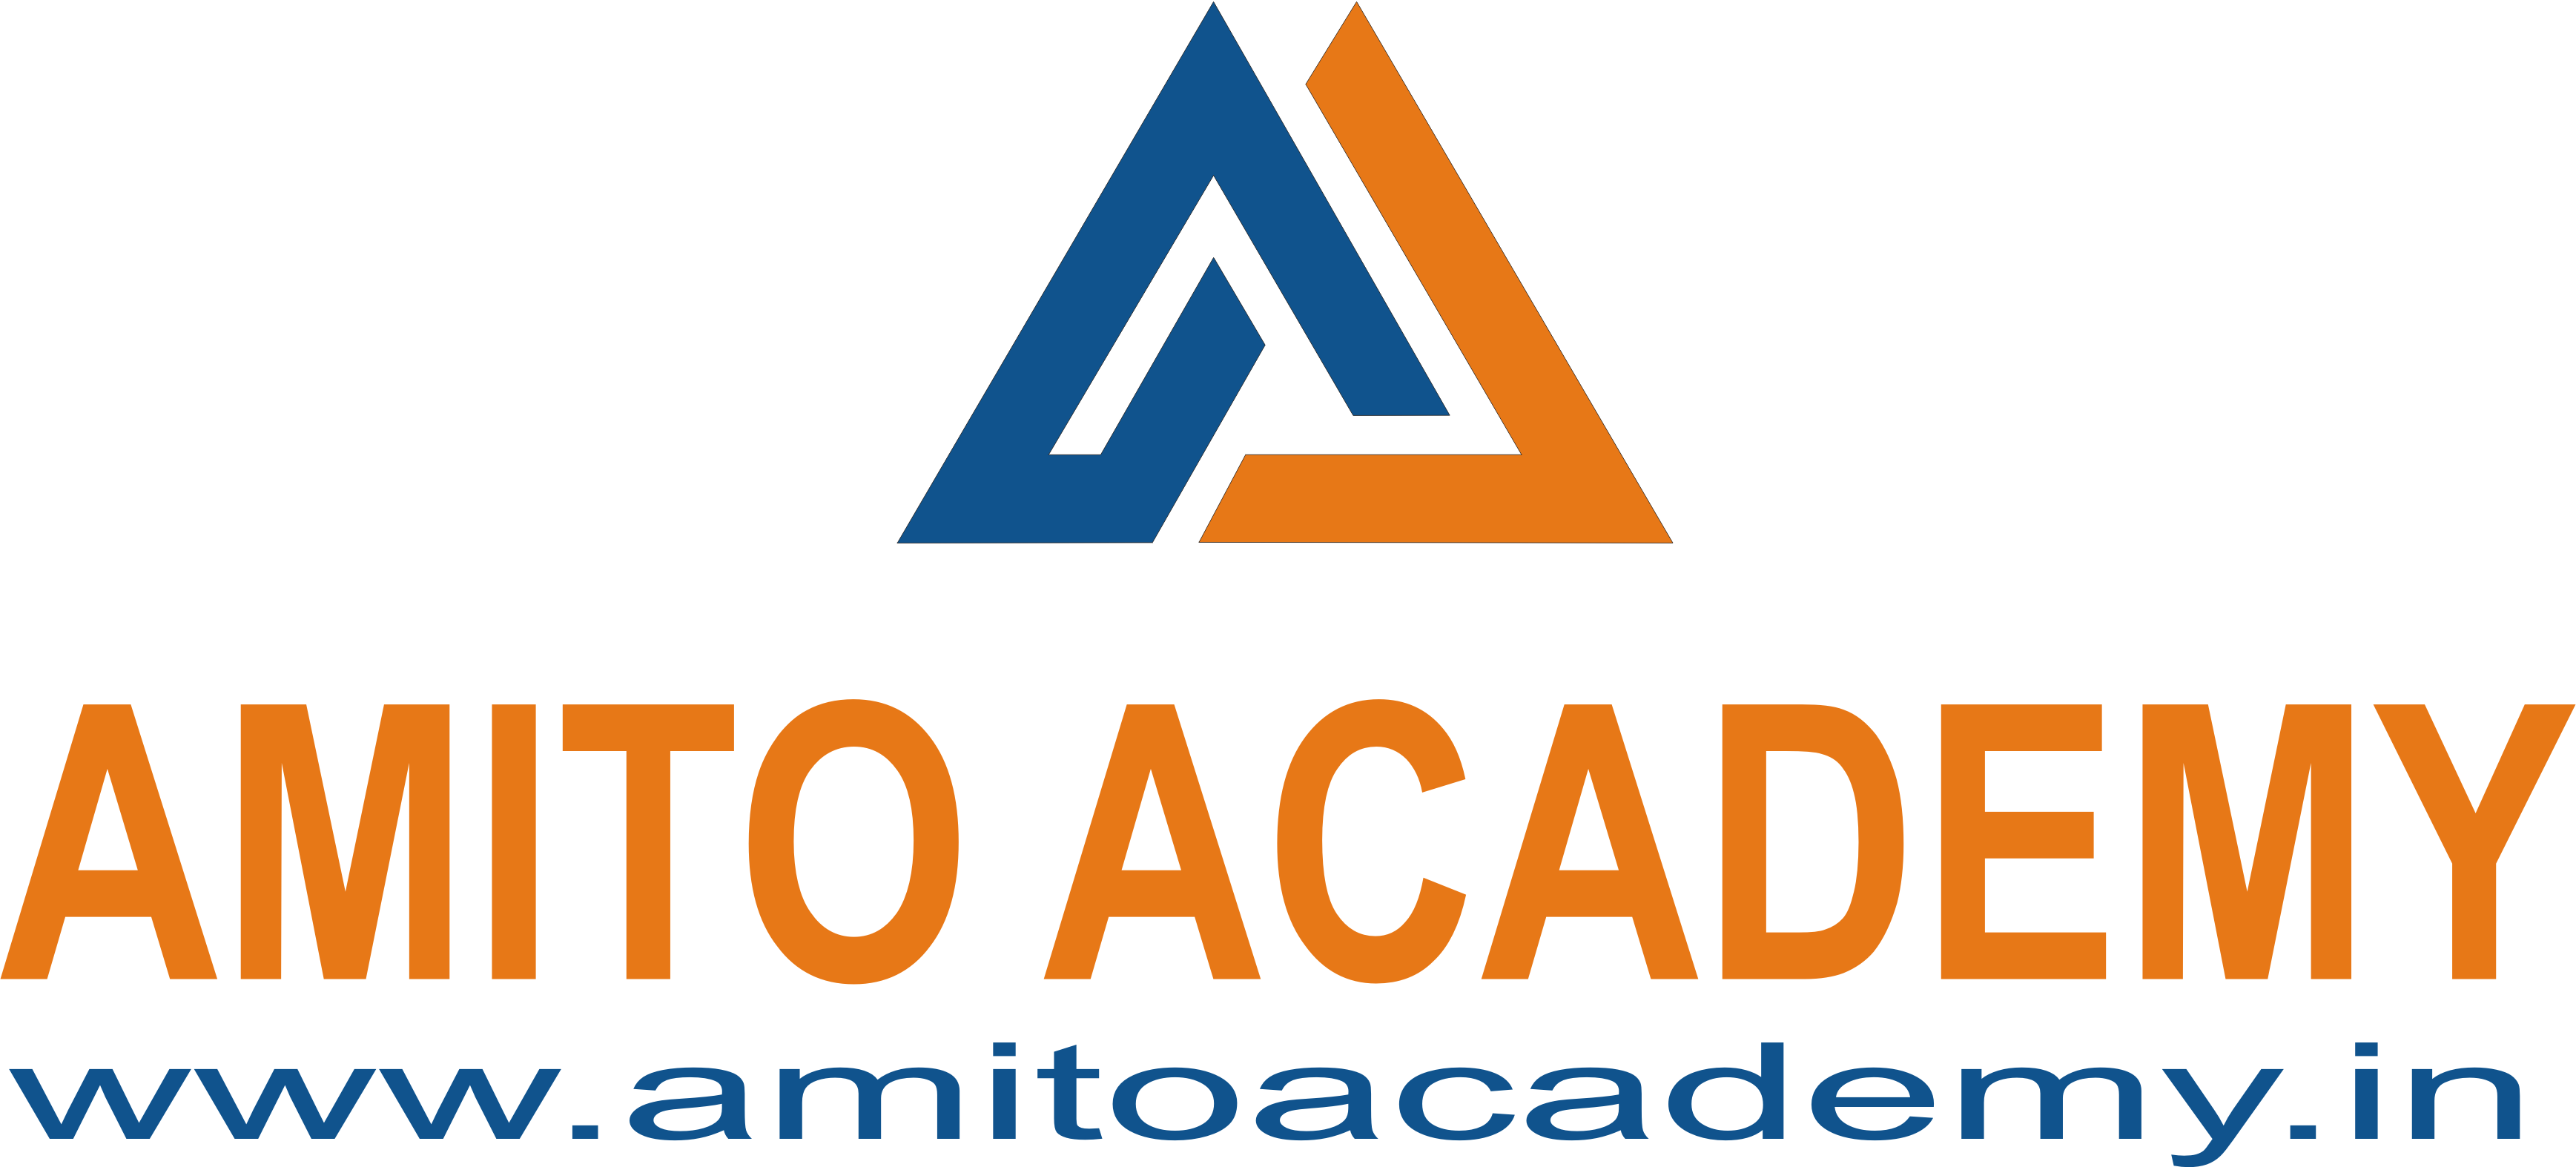 amitoacademy.in